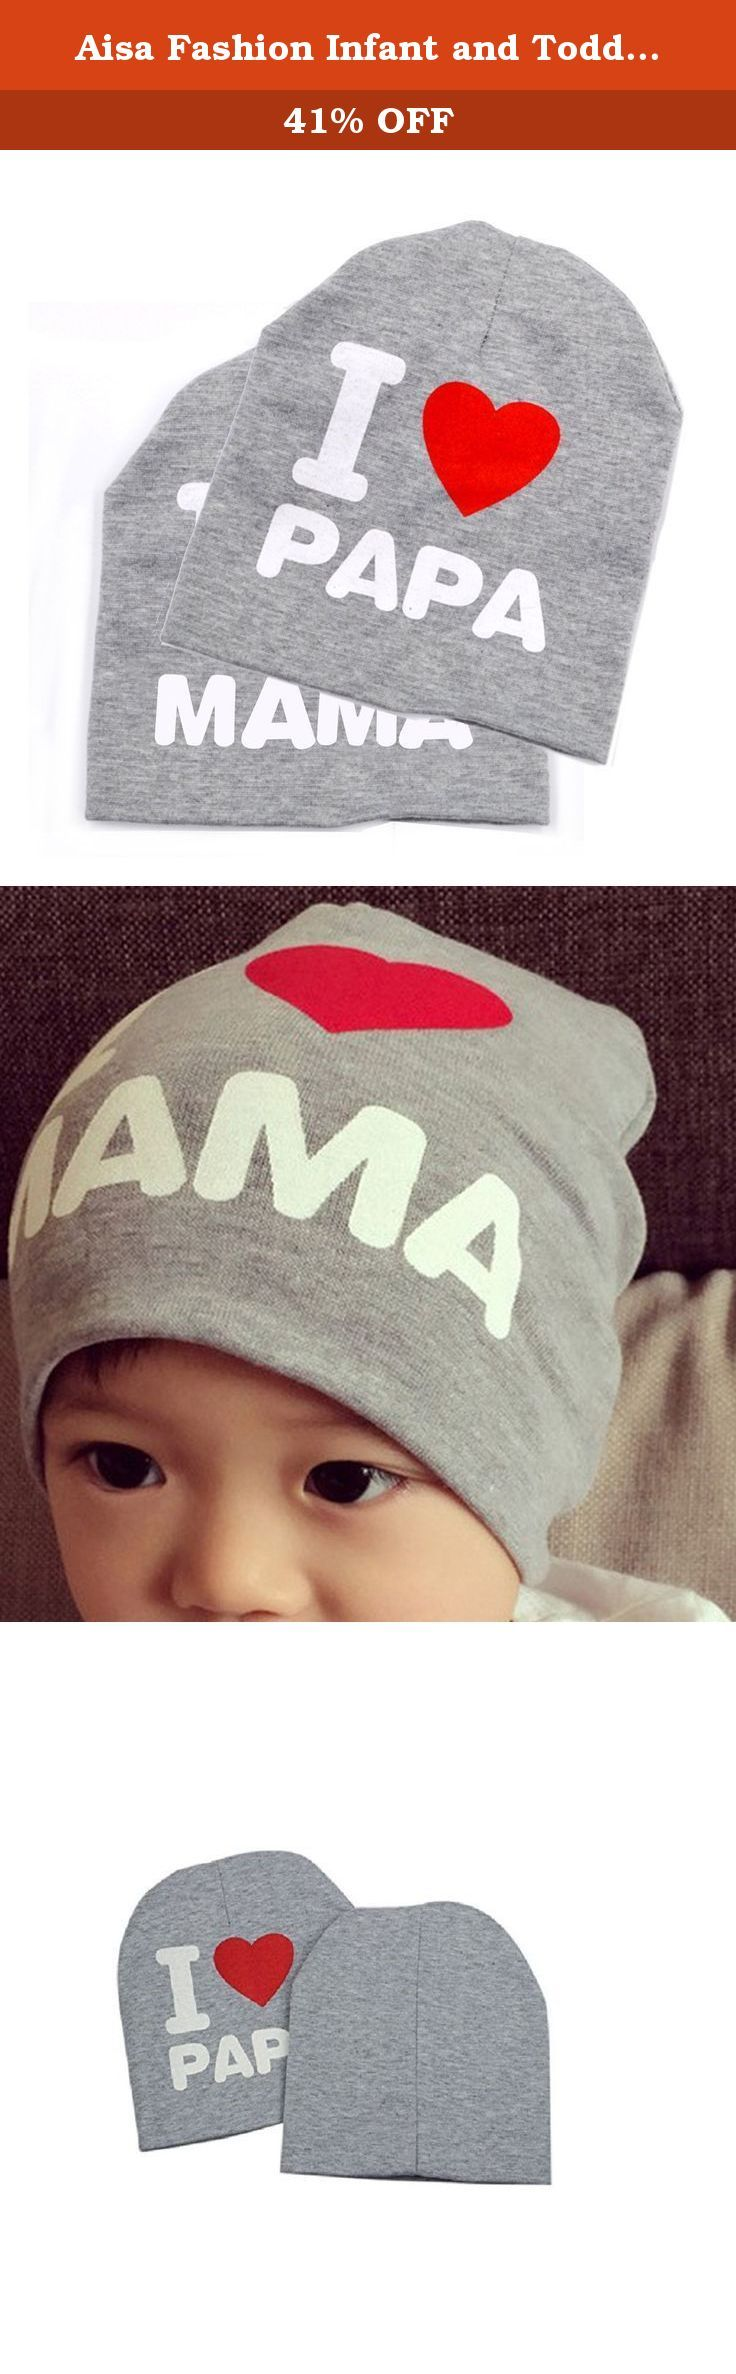 Aisa Fashion Infant and Toddler Baby Cotton I LOVE MAMA/PAPA Printed Soft Beanie Hat Cap(Pack of 2) Color Grey. Aisa Fashion Infant and Toddler Baby Cotton I LOVE MAMA/PAPA Printed Soft Beanie Hat (Pack of 2) Gender: Unisex. Baby Boys/Girls Color: Grey/Black/Pink/White Material: Cotton Head circumference:approx 40~55CM/15.7~21.6IN Stretchy and flexible,suitable for baby about 7 month ~3 years old Packaging include:2pcs * baby hat,I Love MAMA/PAPA each have 1pcs Fashion design,soft and…